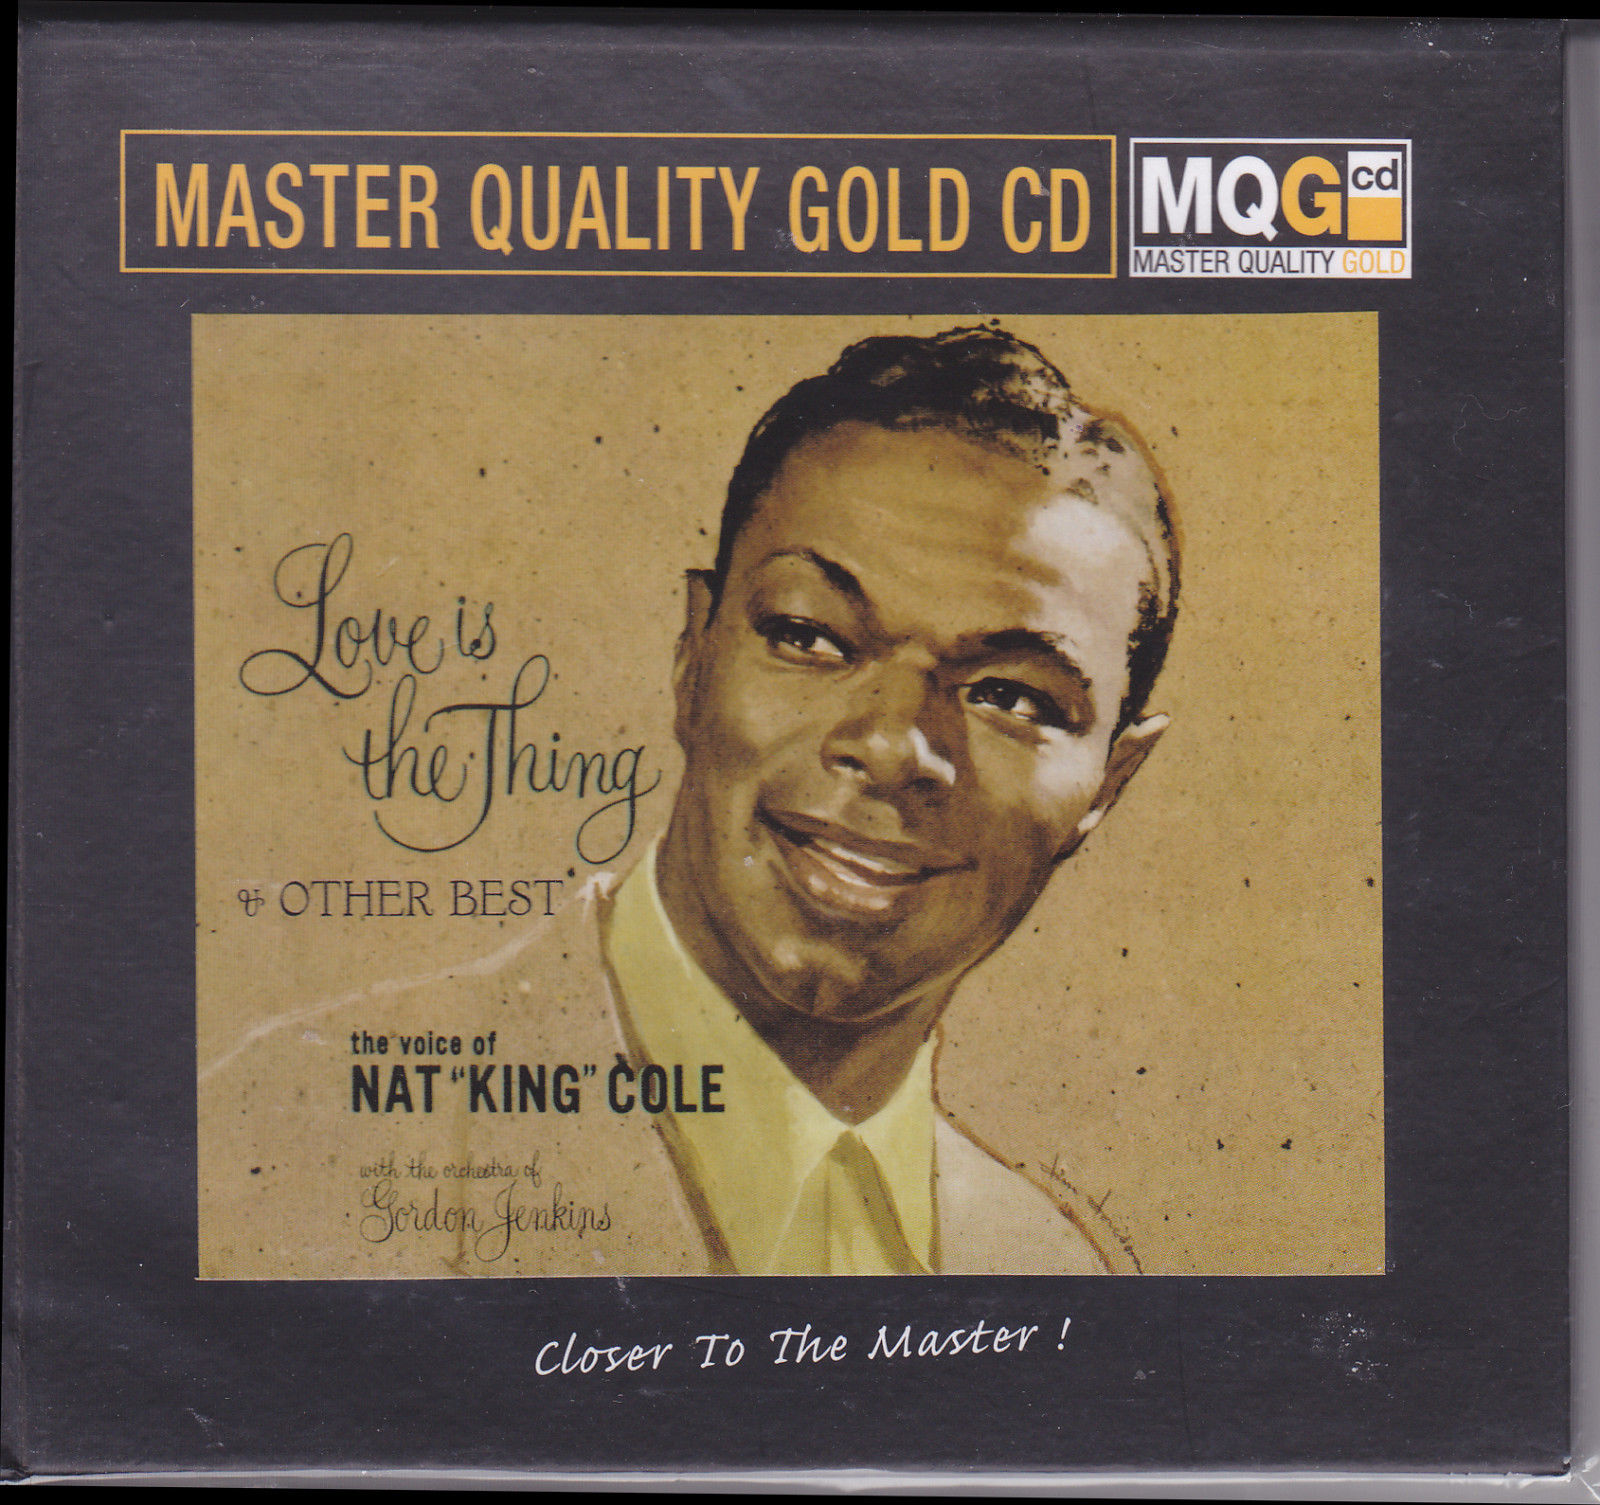 407)Nat King Cole - Love is the Thing & Other Best (MQGCD)